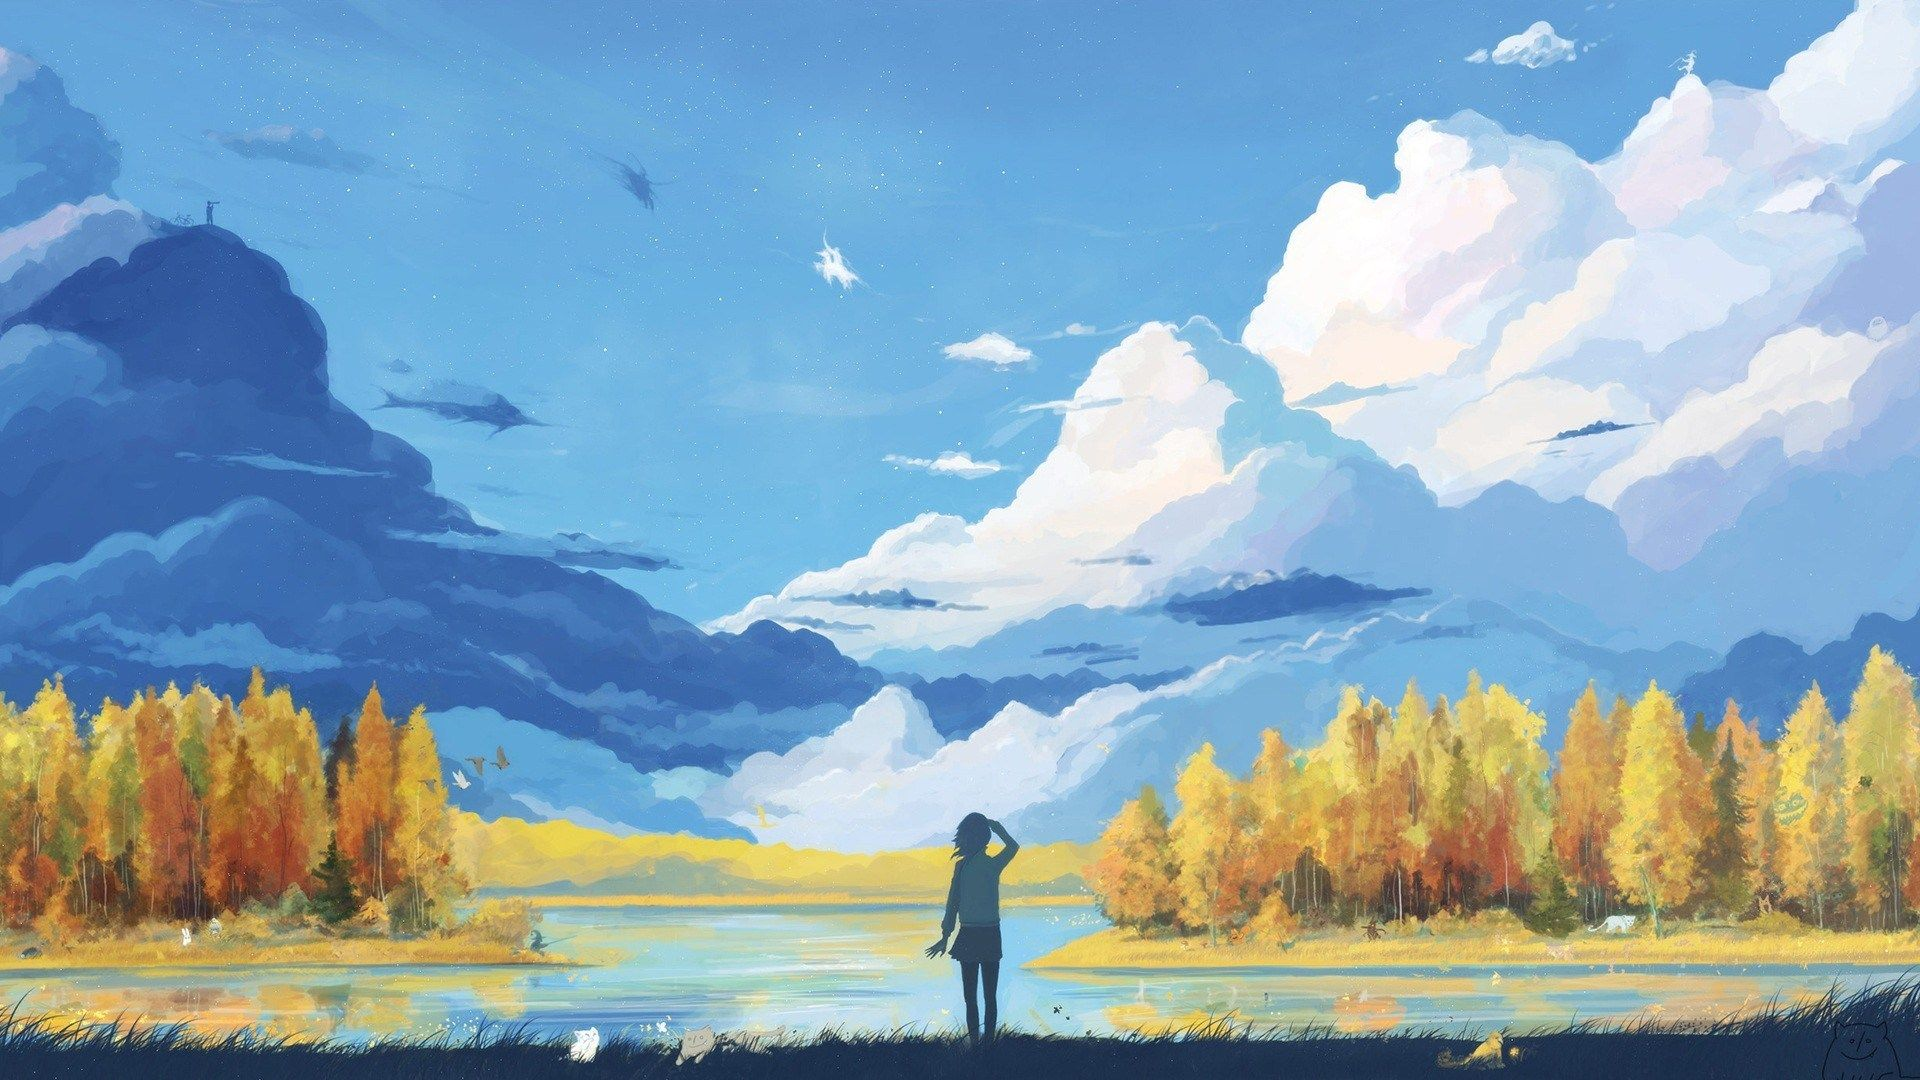 20 Best & Beautiful Anime Art Wallpaper